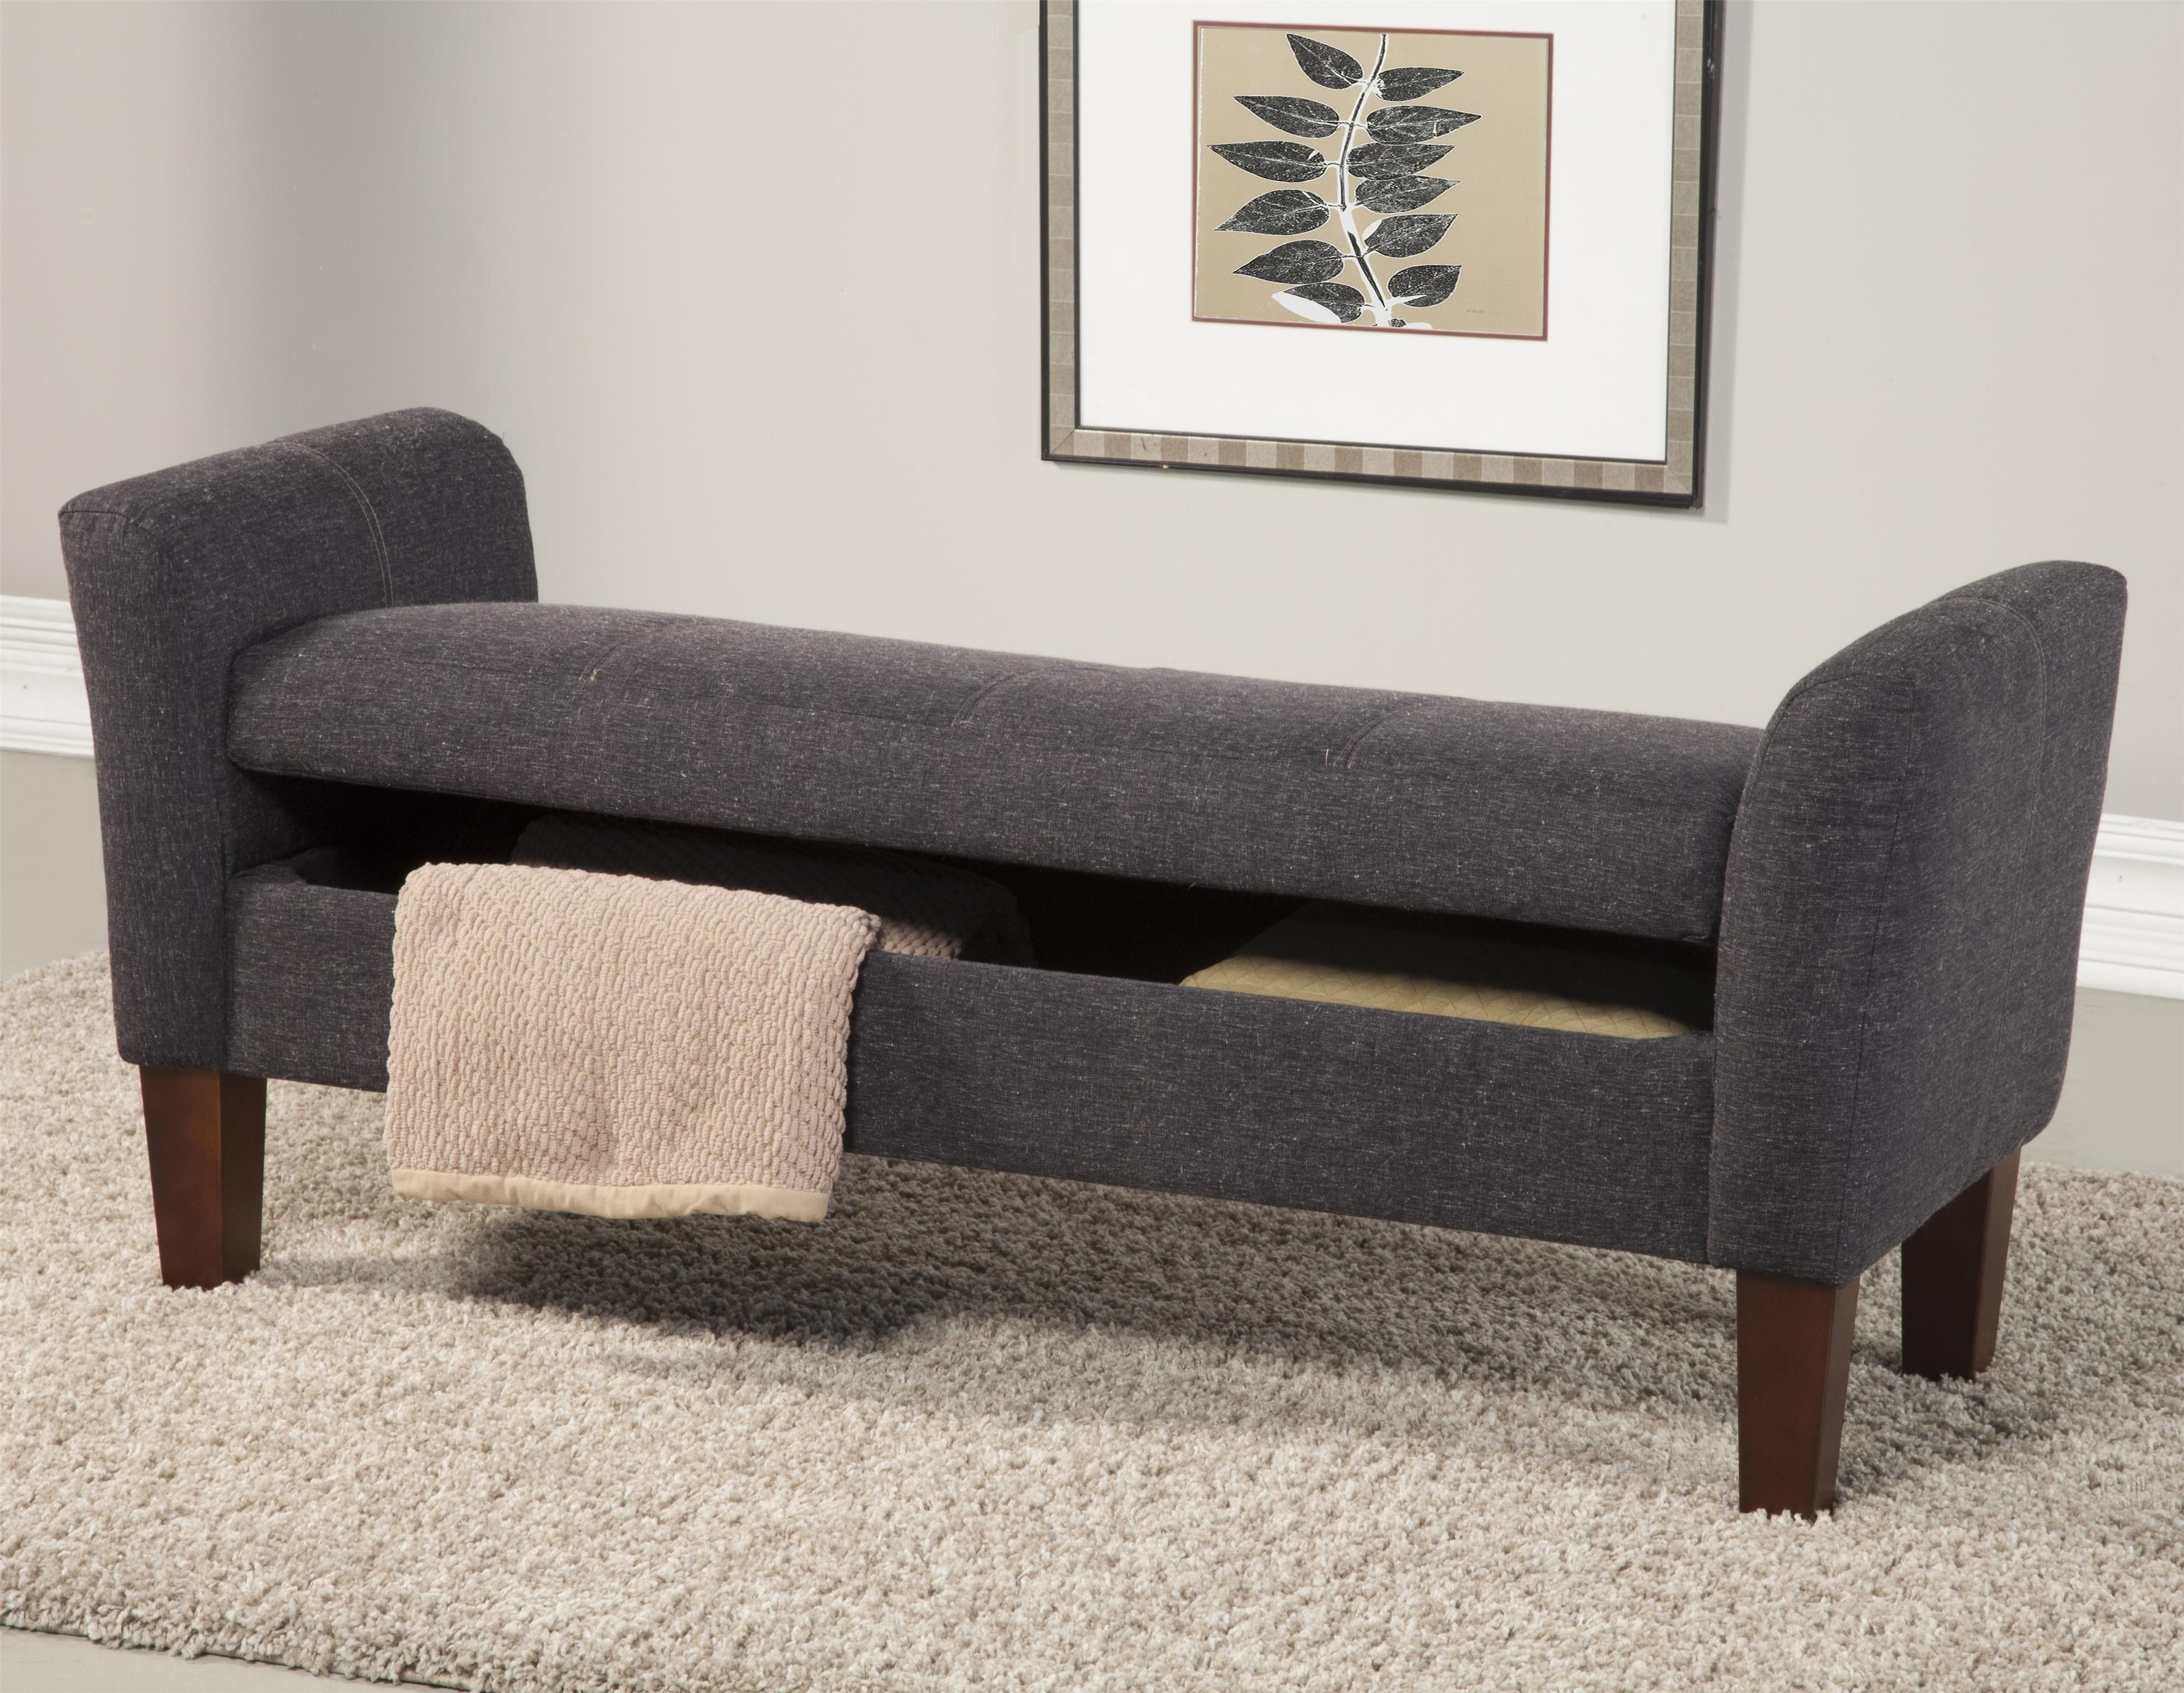 Bedroom Storage Bench Seat Beautiful Gray Canvas Fabric Bench with Armrest and Storage Also Brown